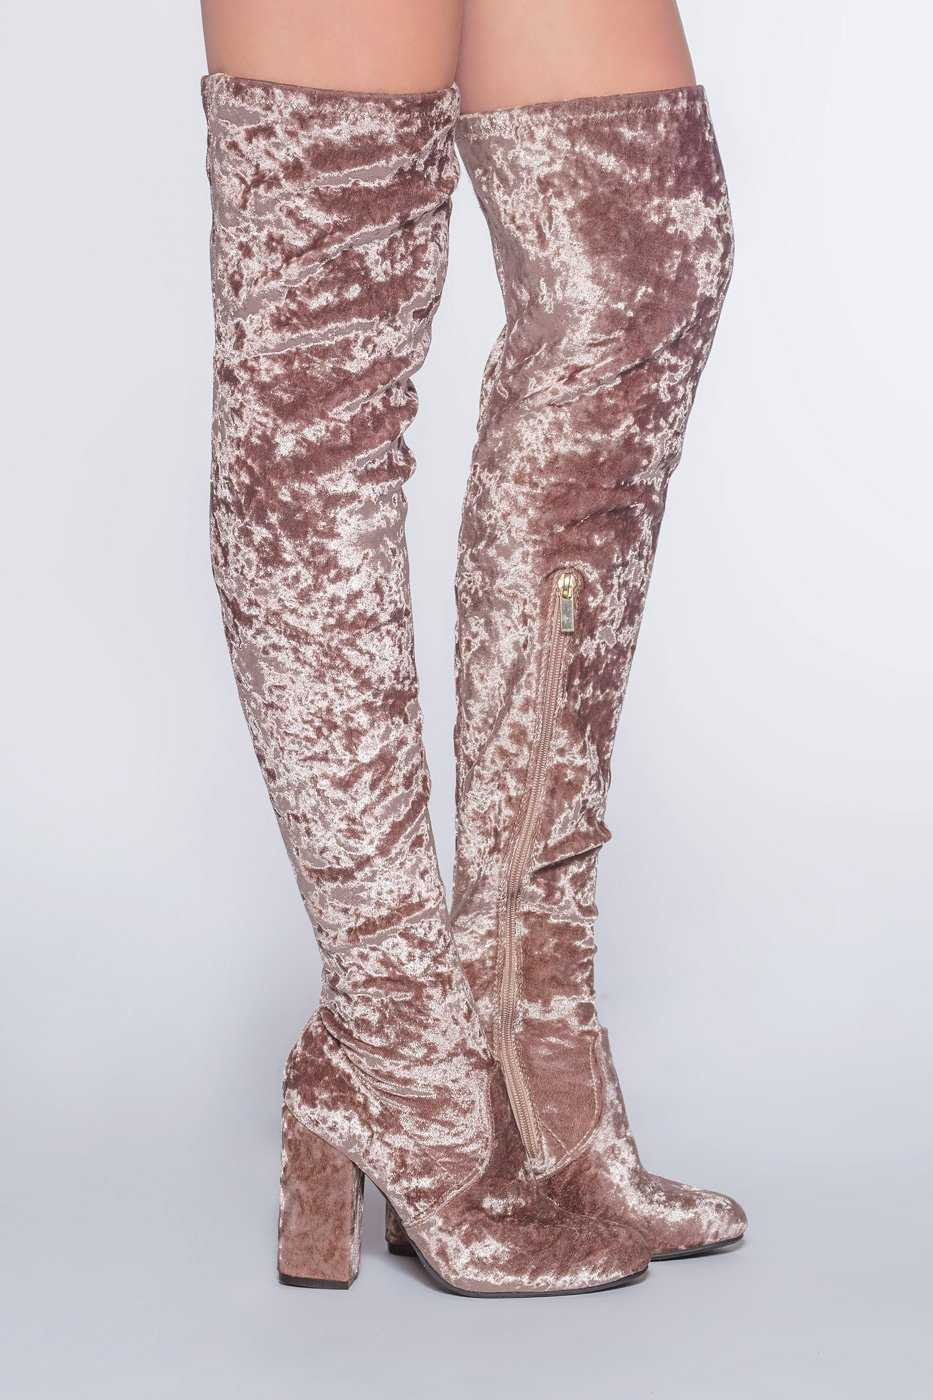 Blush Crushed Velvet Thigh High Boots